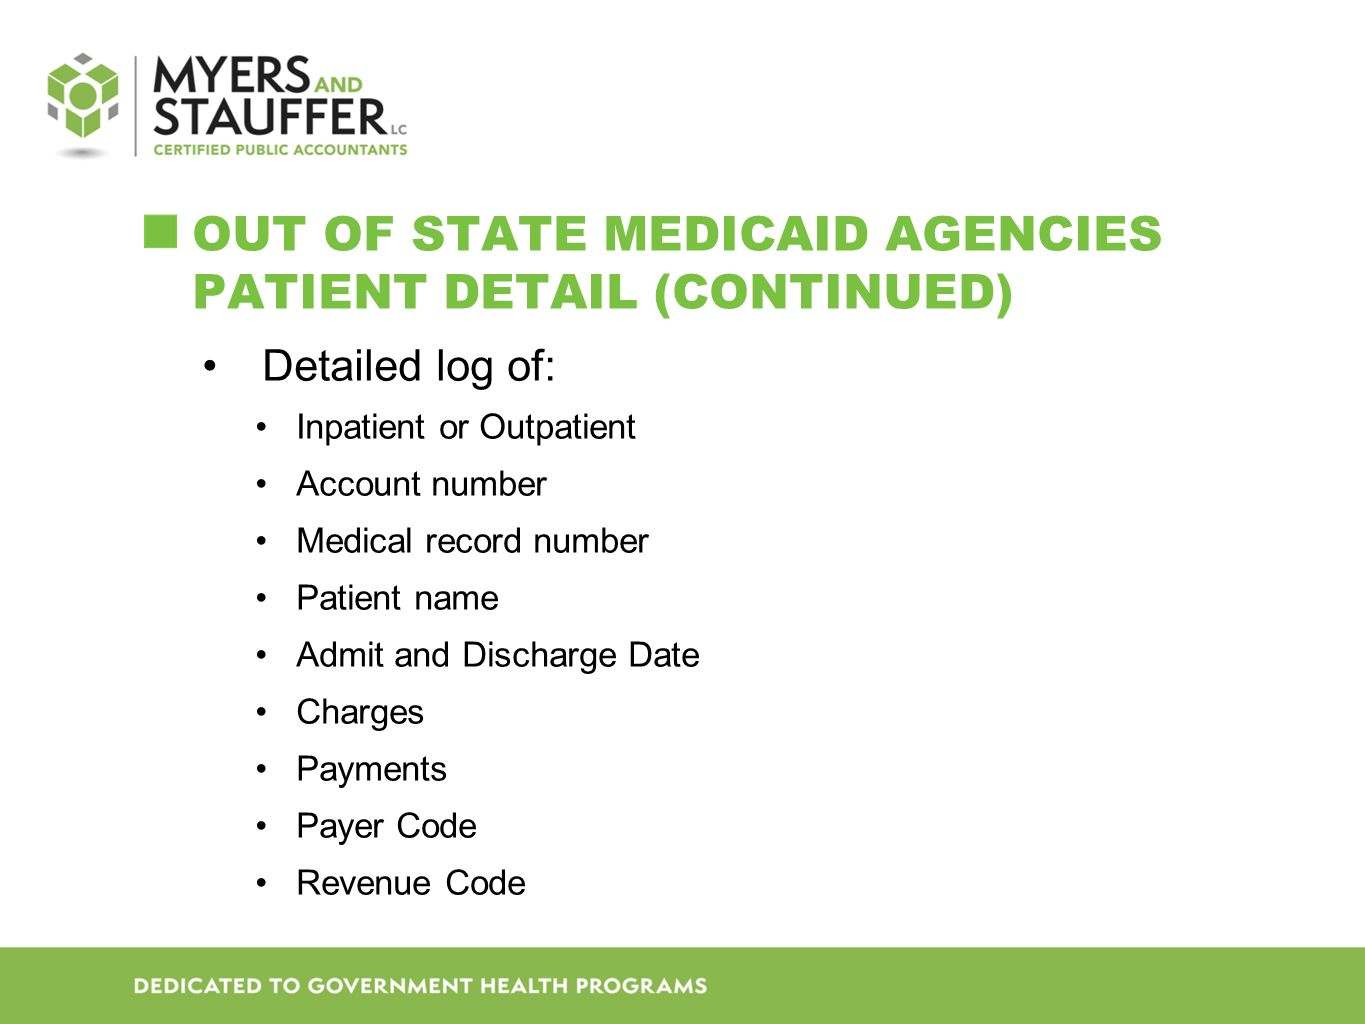 OUT OF STATE MEDICAID AGENCIES PATIENT DETAIL (CONTINUED) Detailed log of: Inpatient or Outpatient Account number Medical record number Patient name Admit and Discharge Date Charges Payments Payer Code Revenue Code